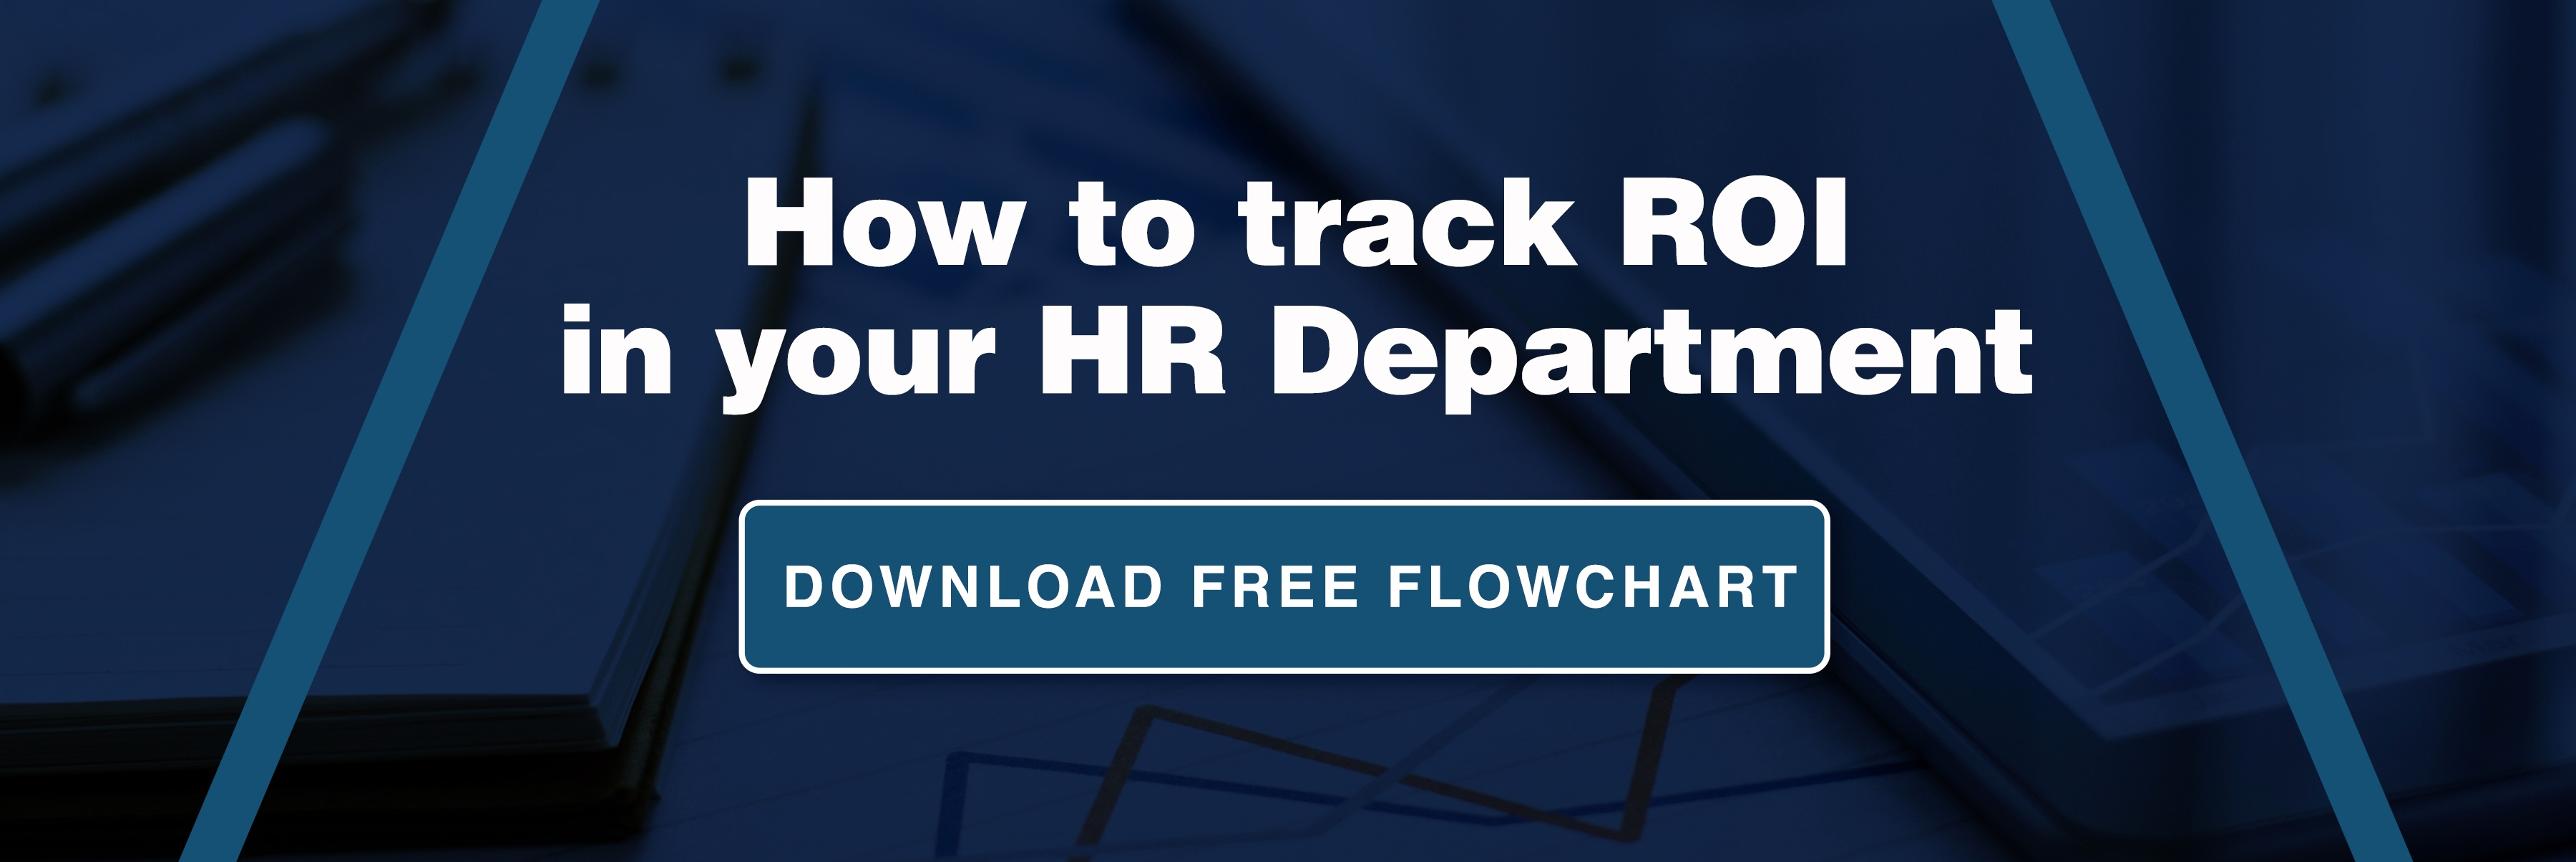 How to track ROI in your HR department